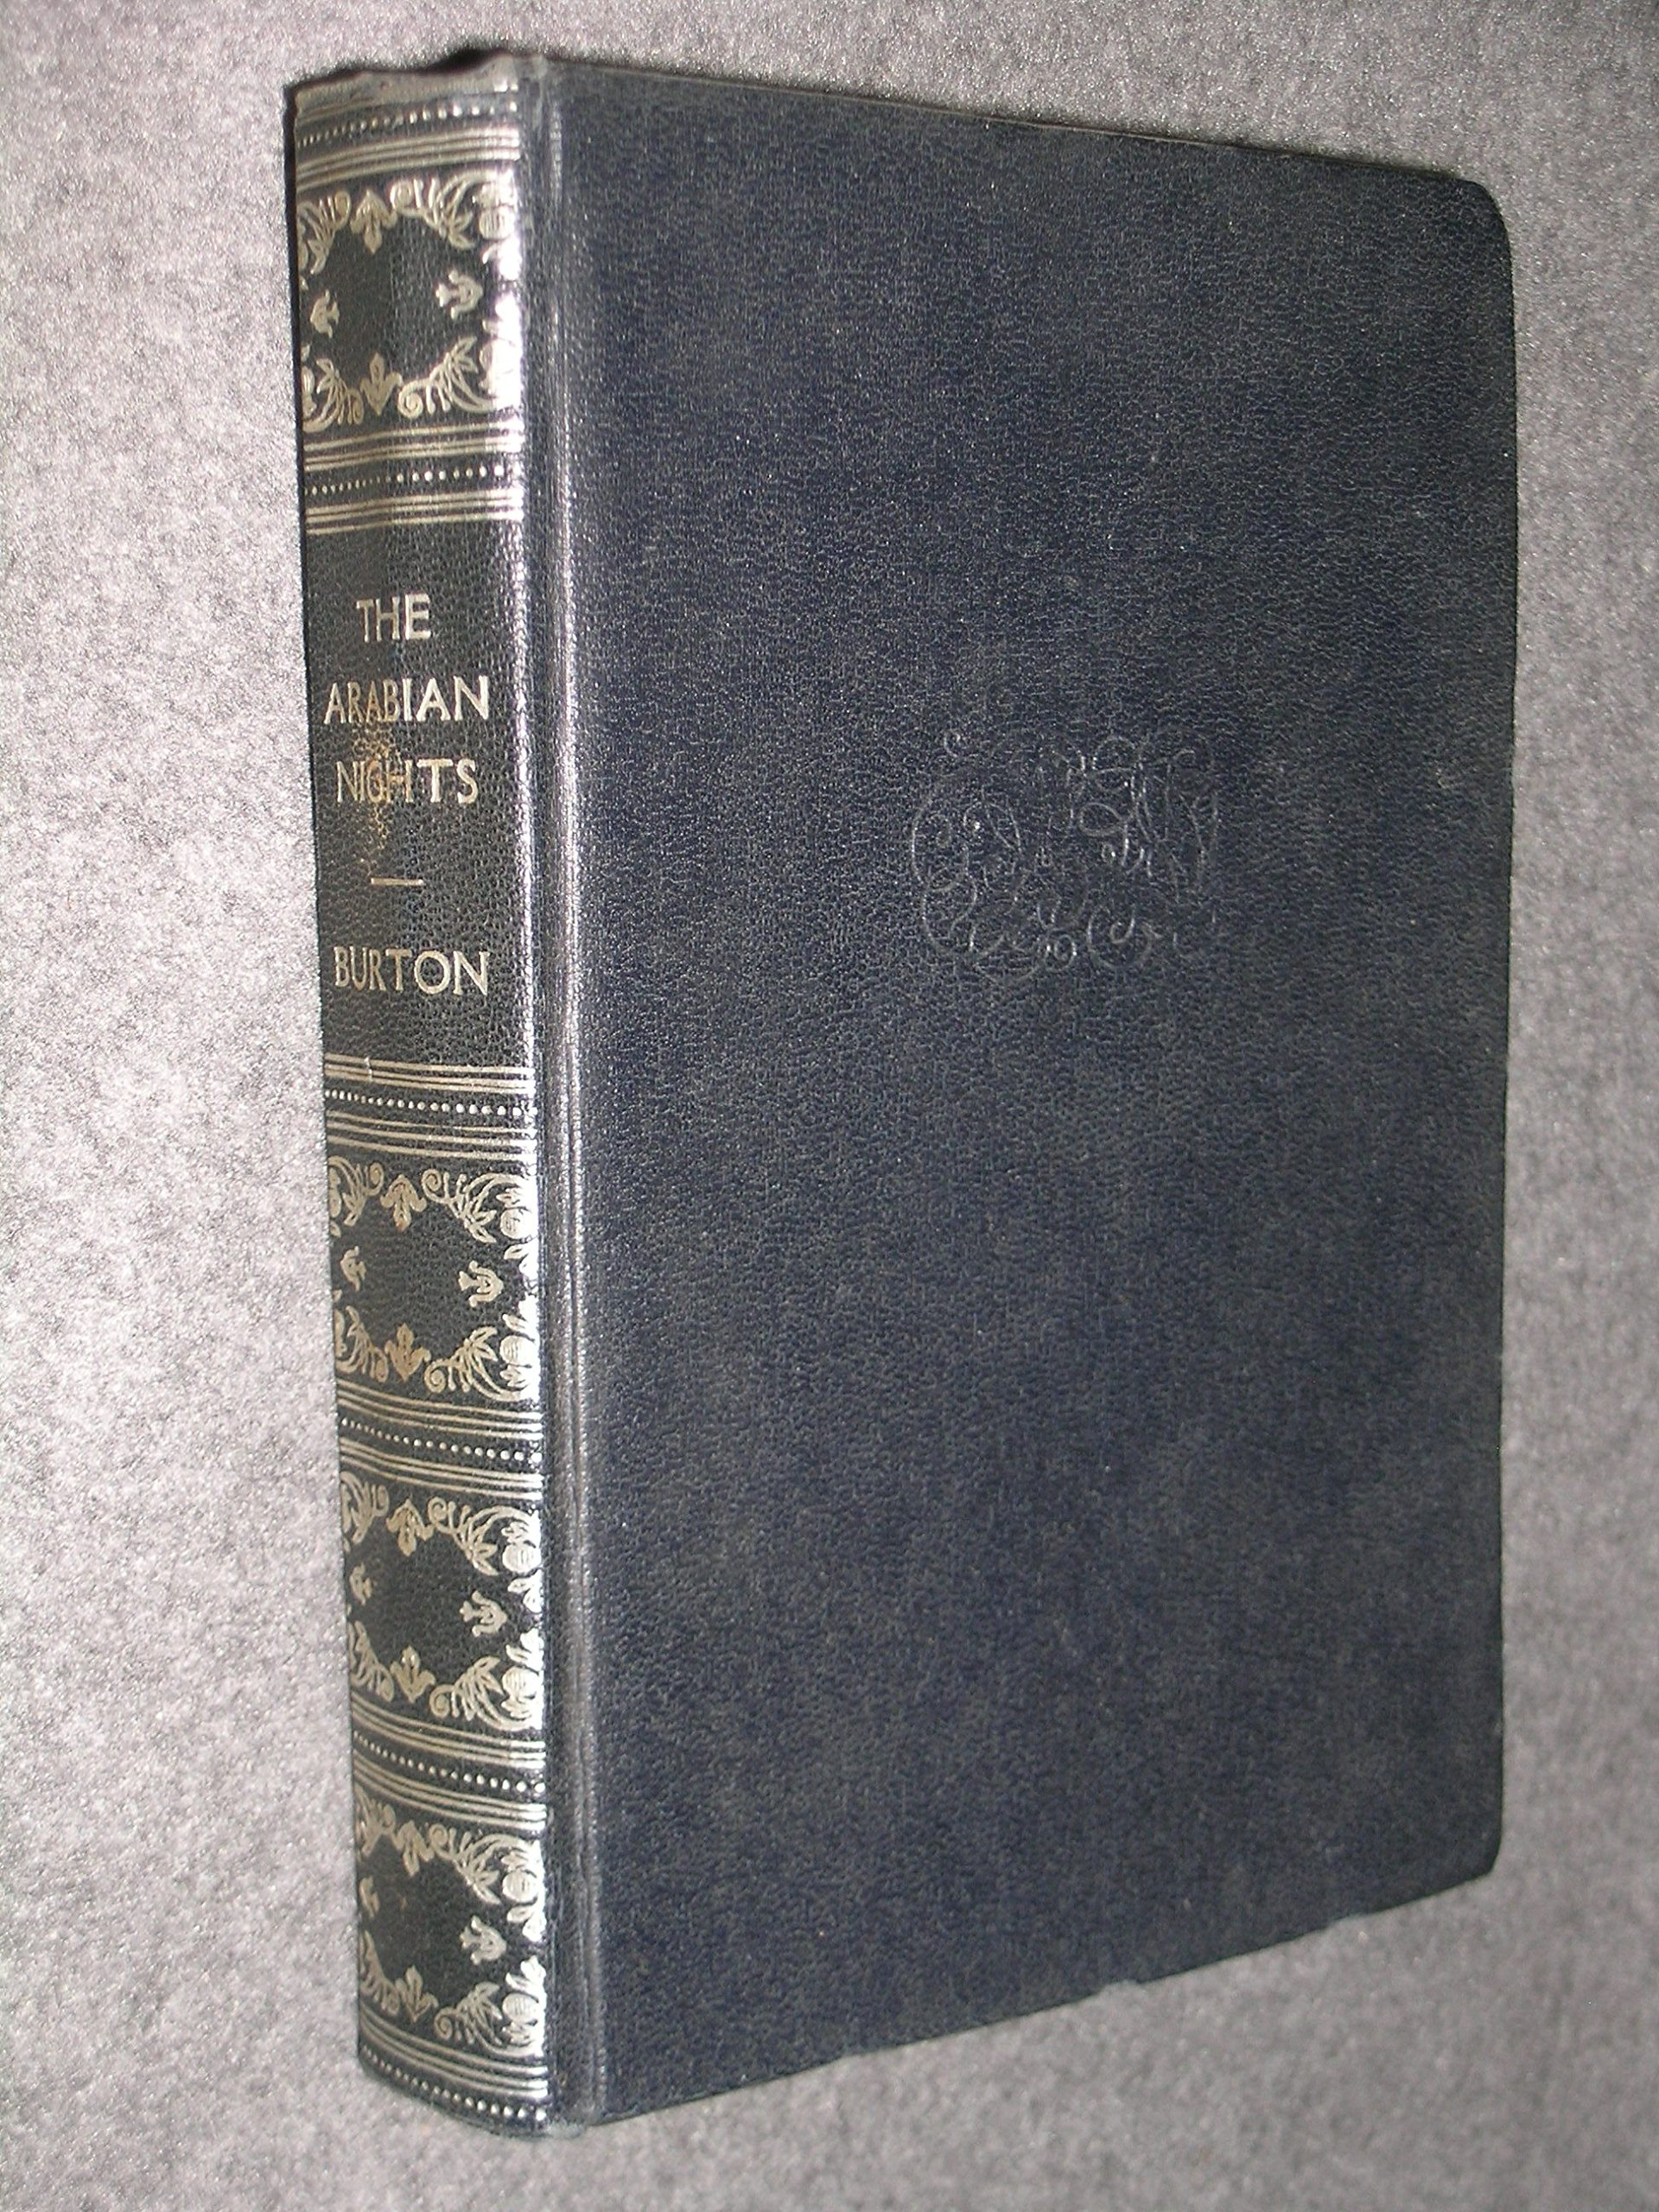 Selections from the Arabian Nights, Burton, Sir Richard & Savage, Steele (Illustrator)